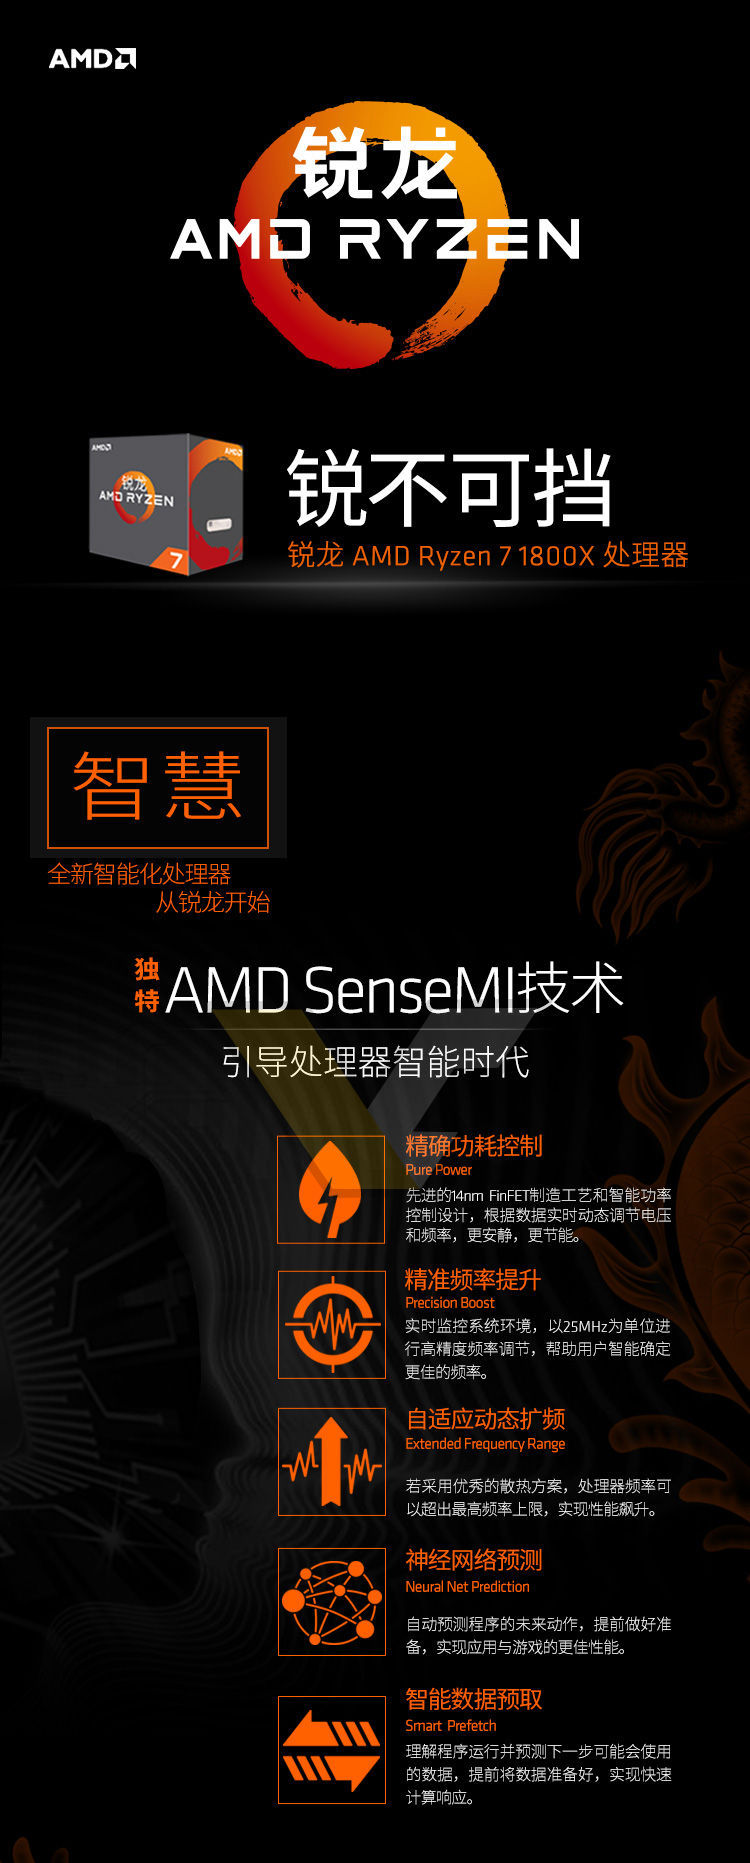 Chinese and Korean retailers leak AMD Ryzen marketing ...